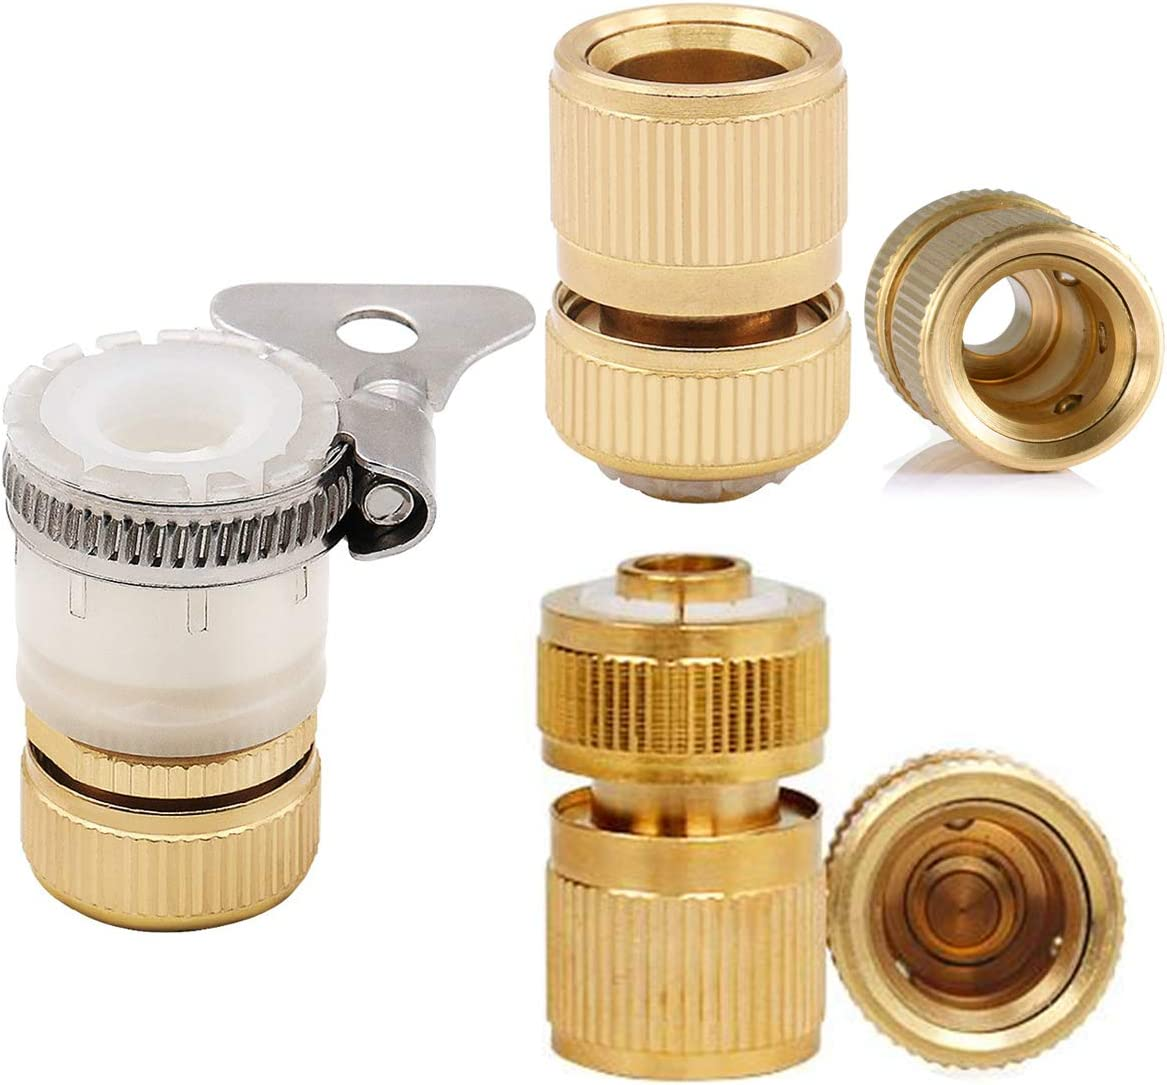 CT 3pc Brass Garden Hose Connector with Water Hose Pipe Fitting 1//2 Quick Connector One With and one Without /'Water Stop/' Function